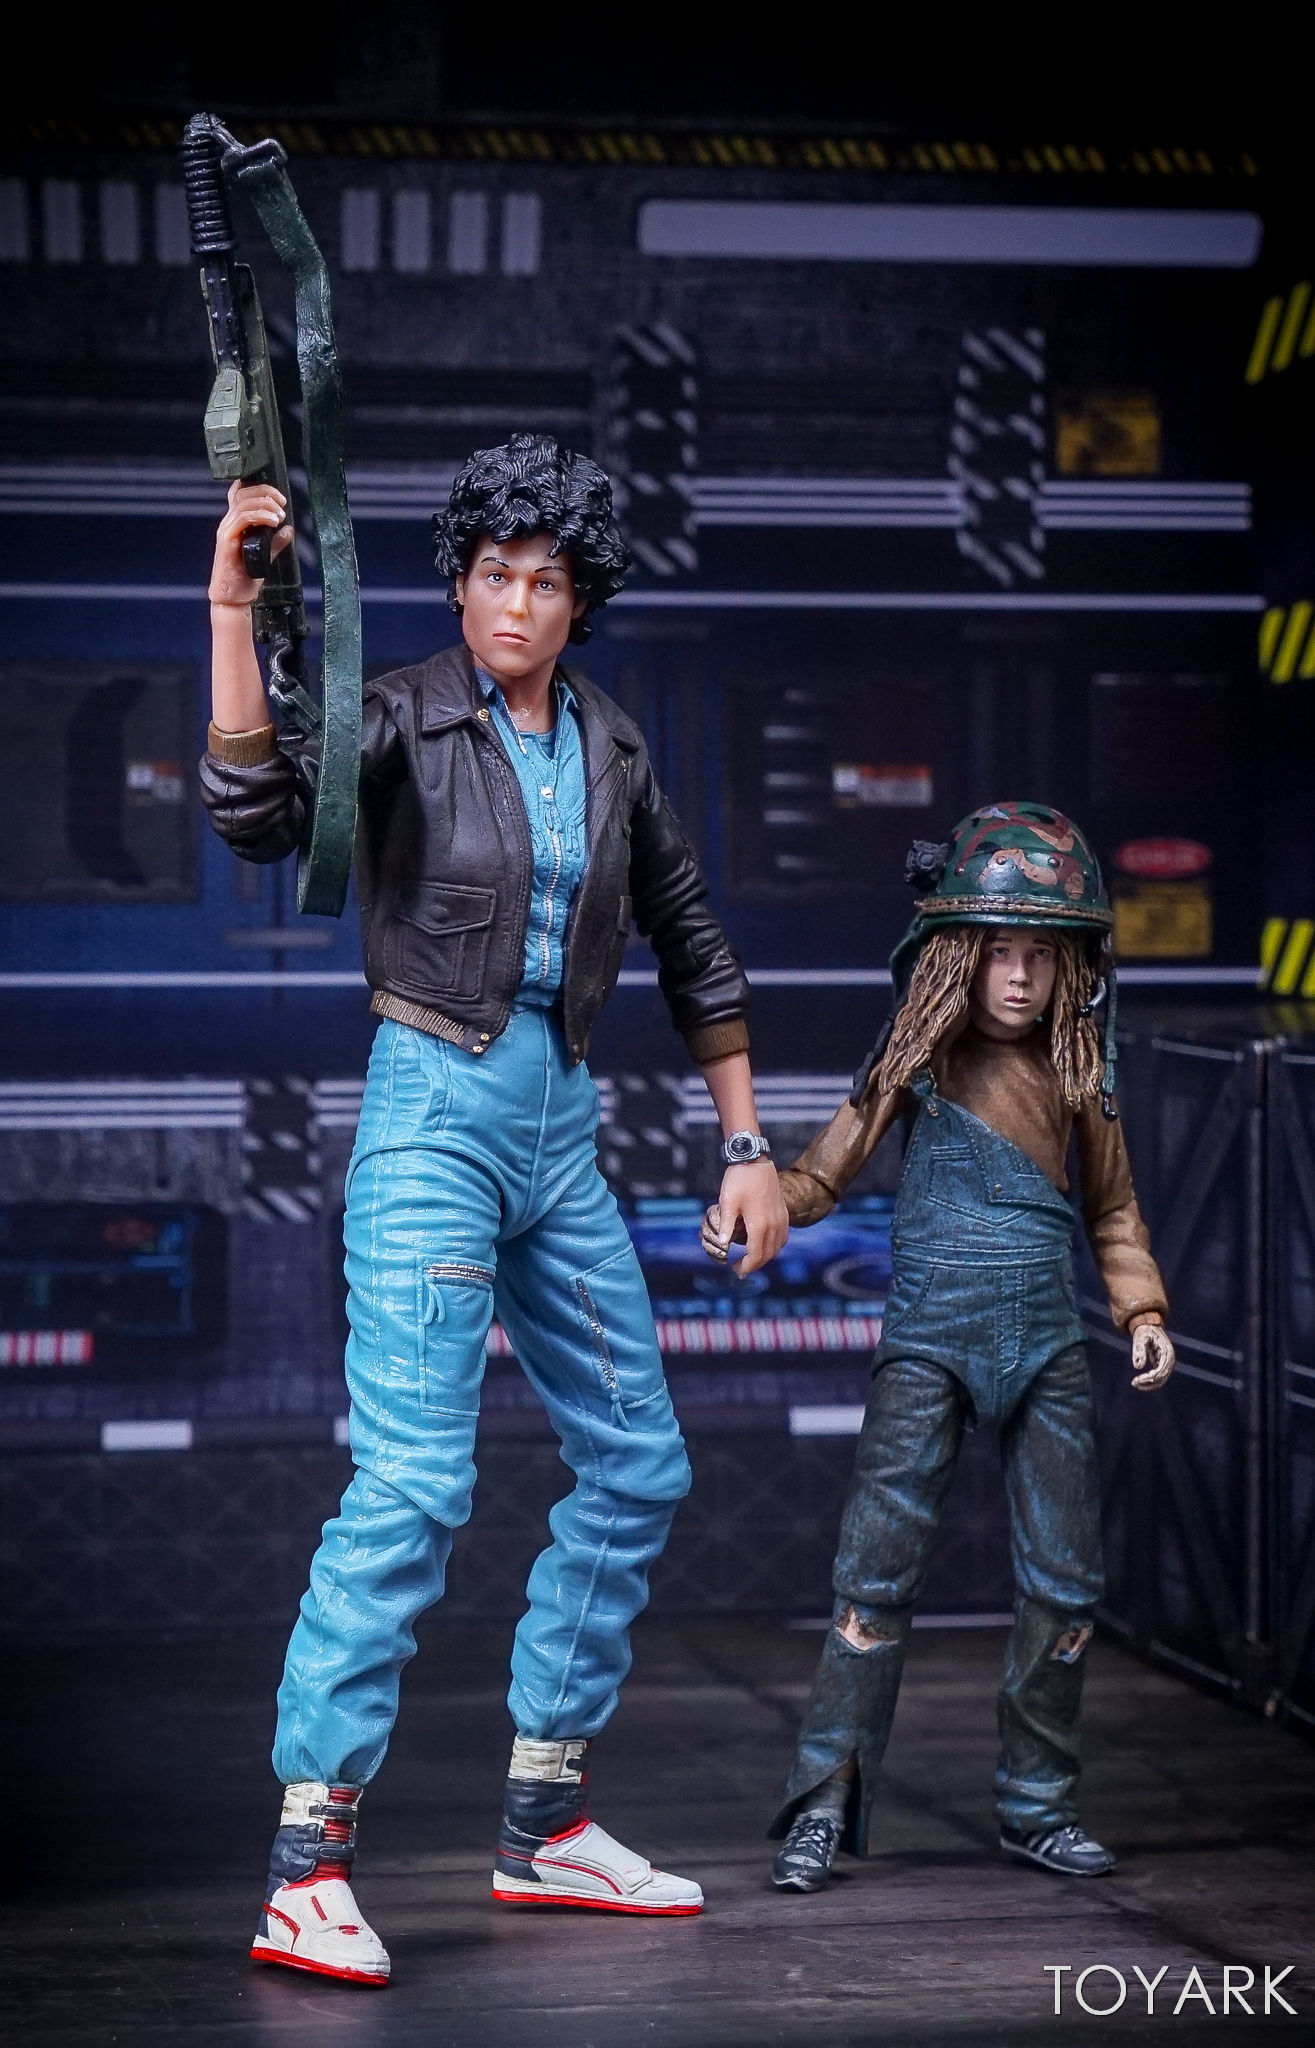 http://news.toyark.com/wp-content/uploads/sites/4/2017/10/NECA-Aliens-Series-12-Figures-040.jpg